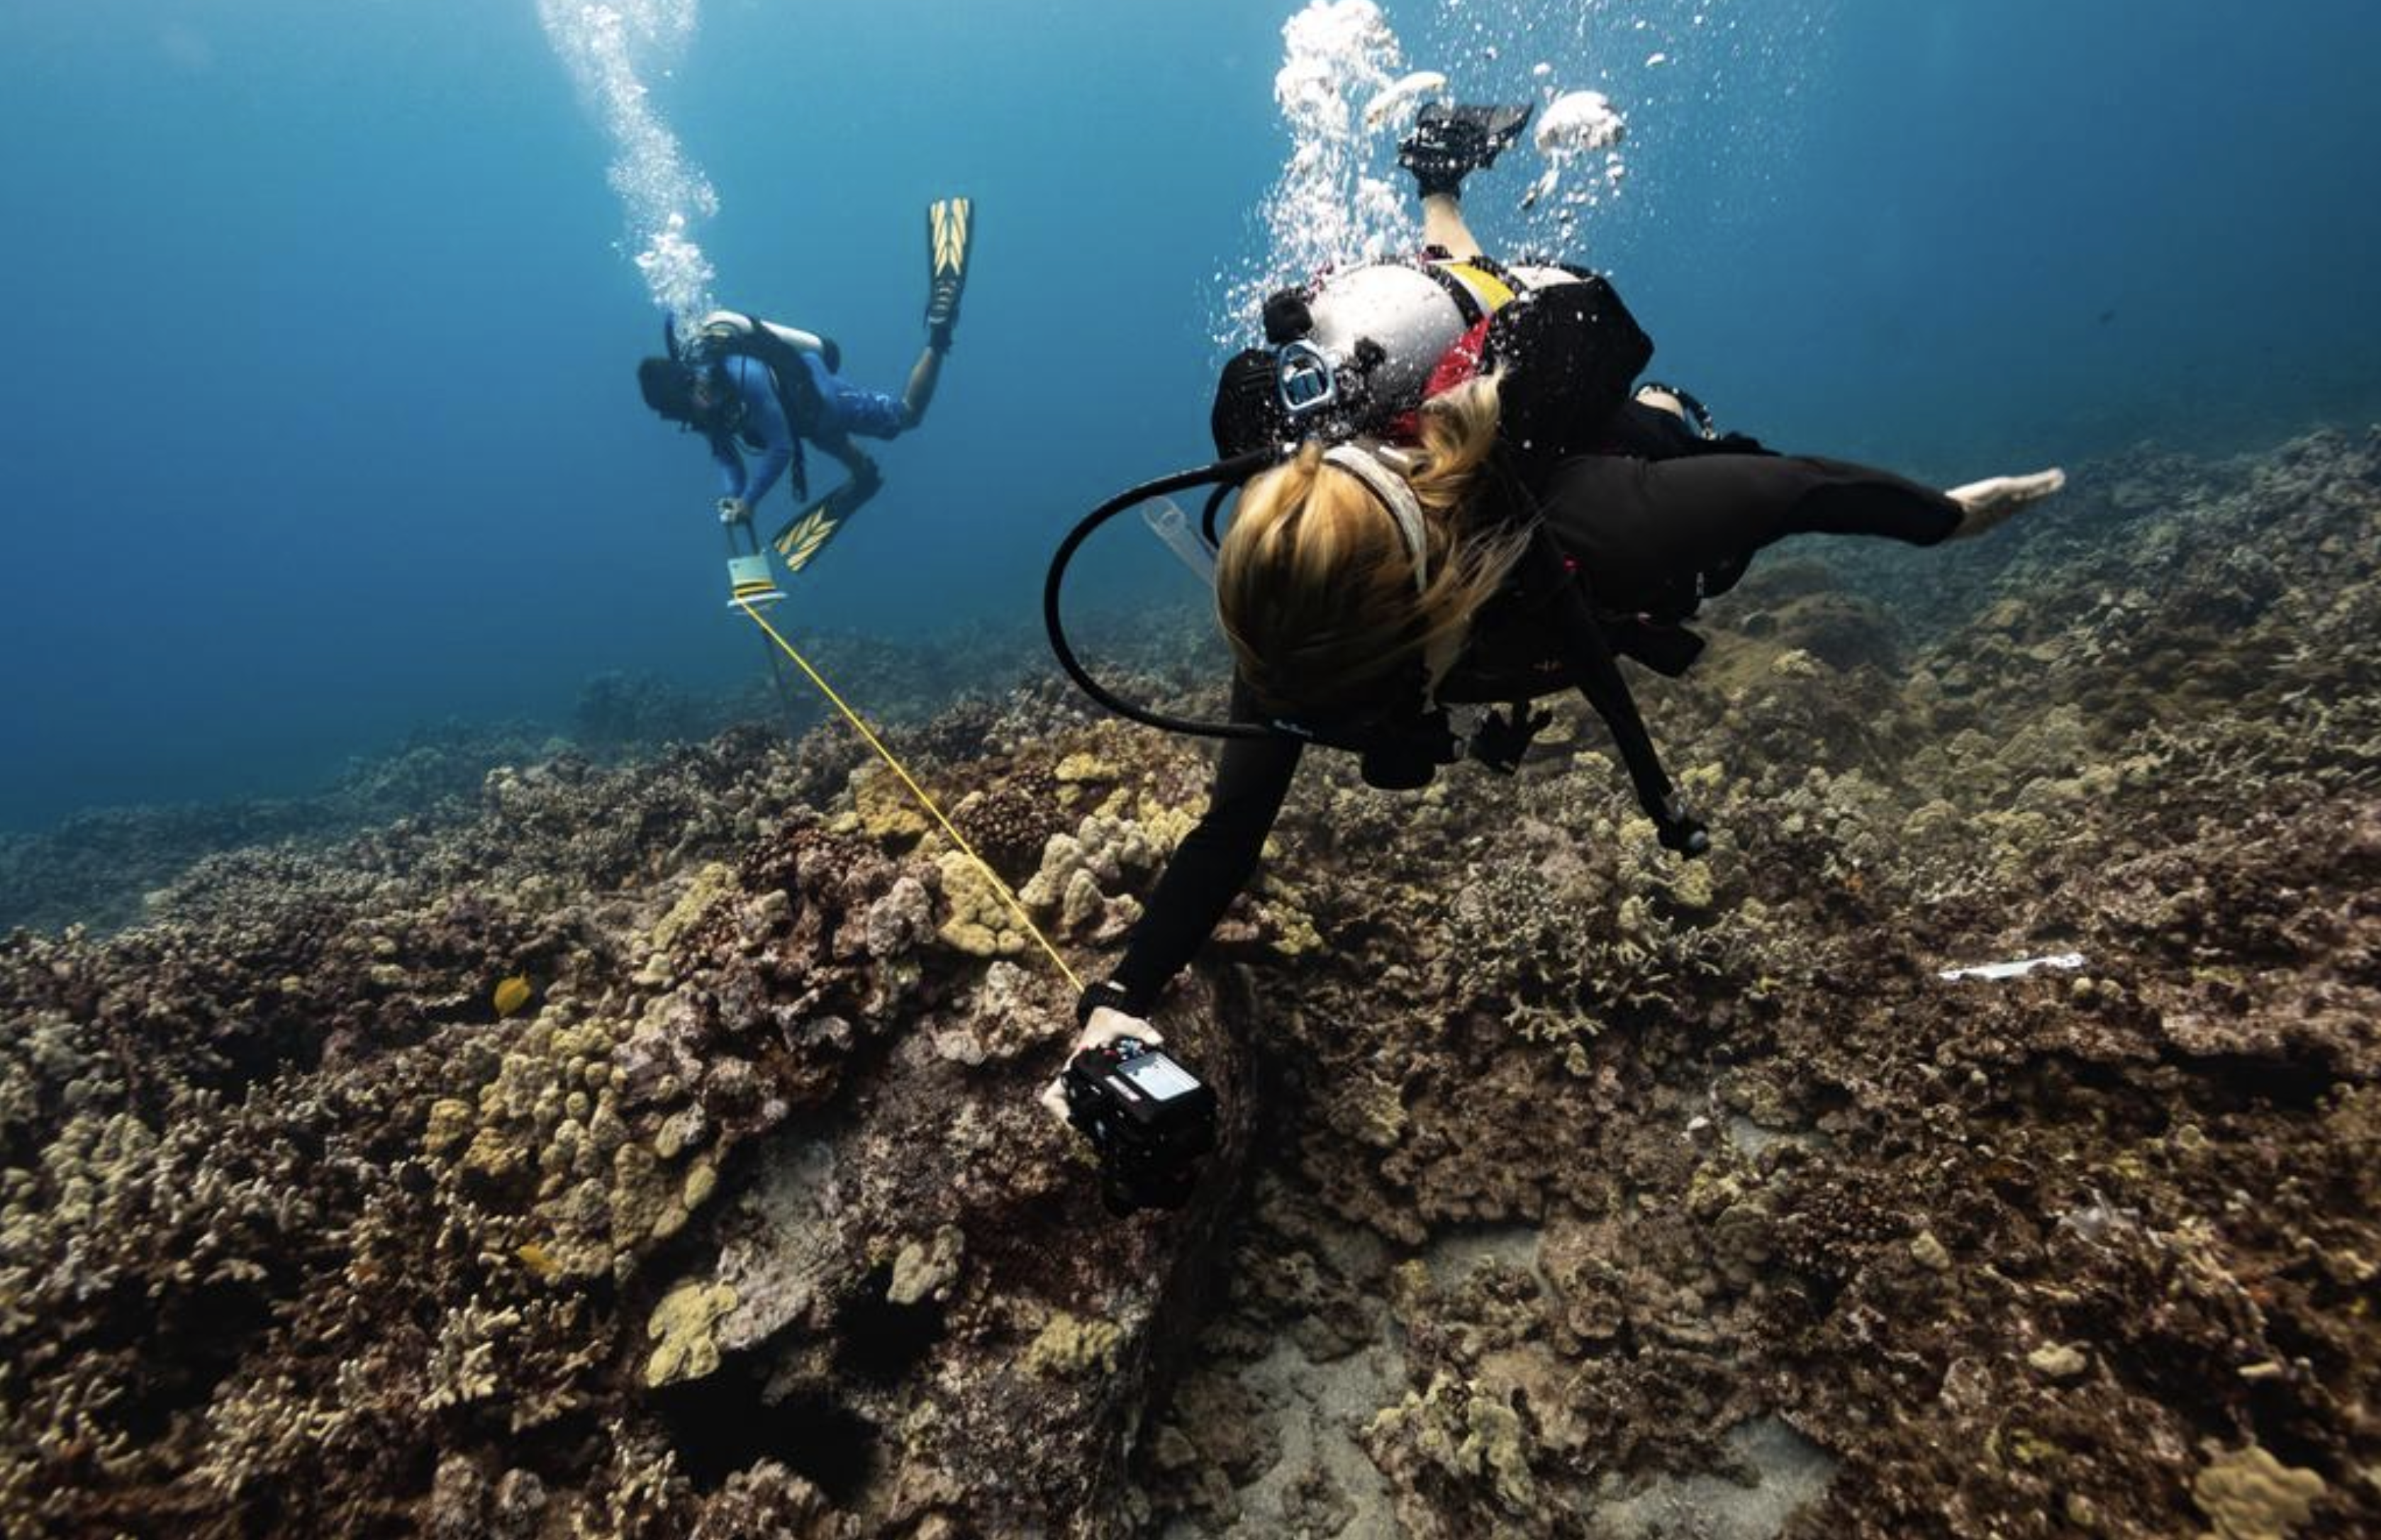 ASU scientists map the Hawaii's coral reefs during a bleaching event